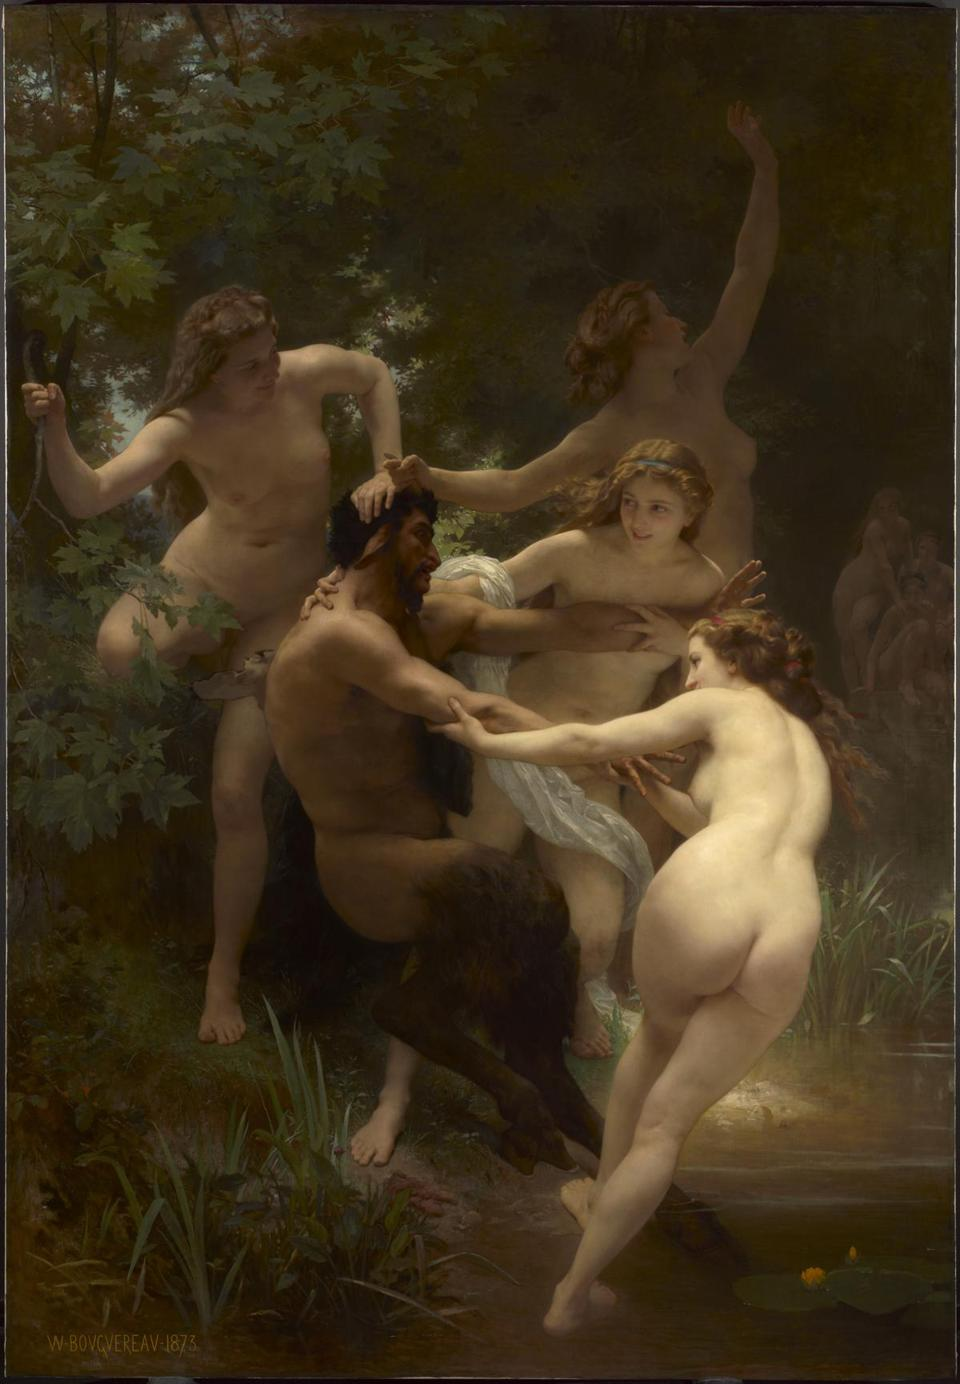 The Clark Art Institute WILLIAM-ADOLPHE BOUGUEREAU FRENCH, 1825Ð1905 NYMPHS AND SATYR 1873 Oil on canvas 102 1/2 x 72 in. (260.4 x 182.9 cm) Frame: 122 1/8 x 90 3/4 x 7 in. (310.2 x 230.5 x 17.8 cm) Acquired by Sterling and Francine Clark, 1942 1955.658 Photo credit: Courtesy of The Clark Art Institute -- 29Clark